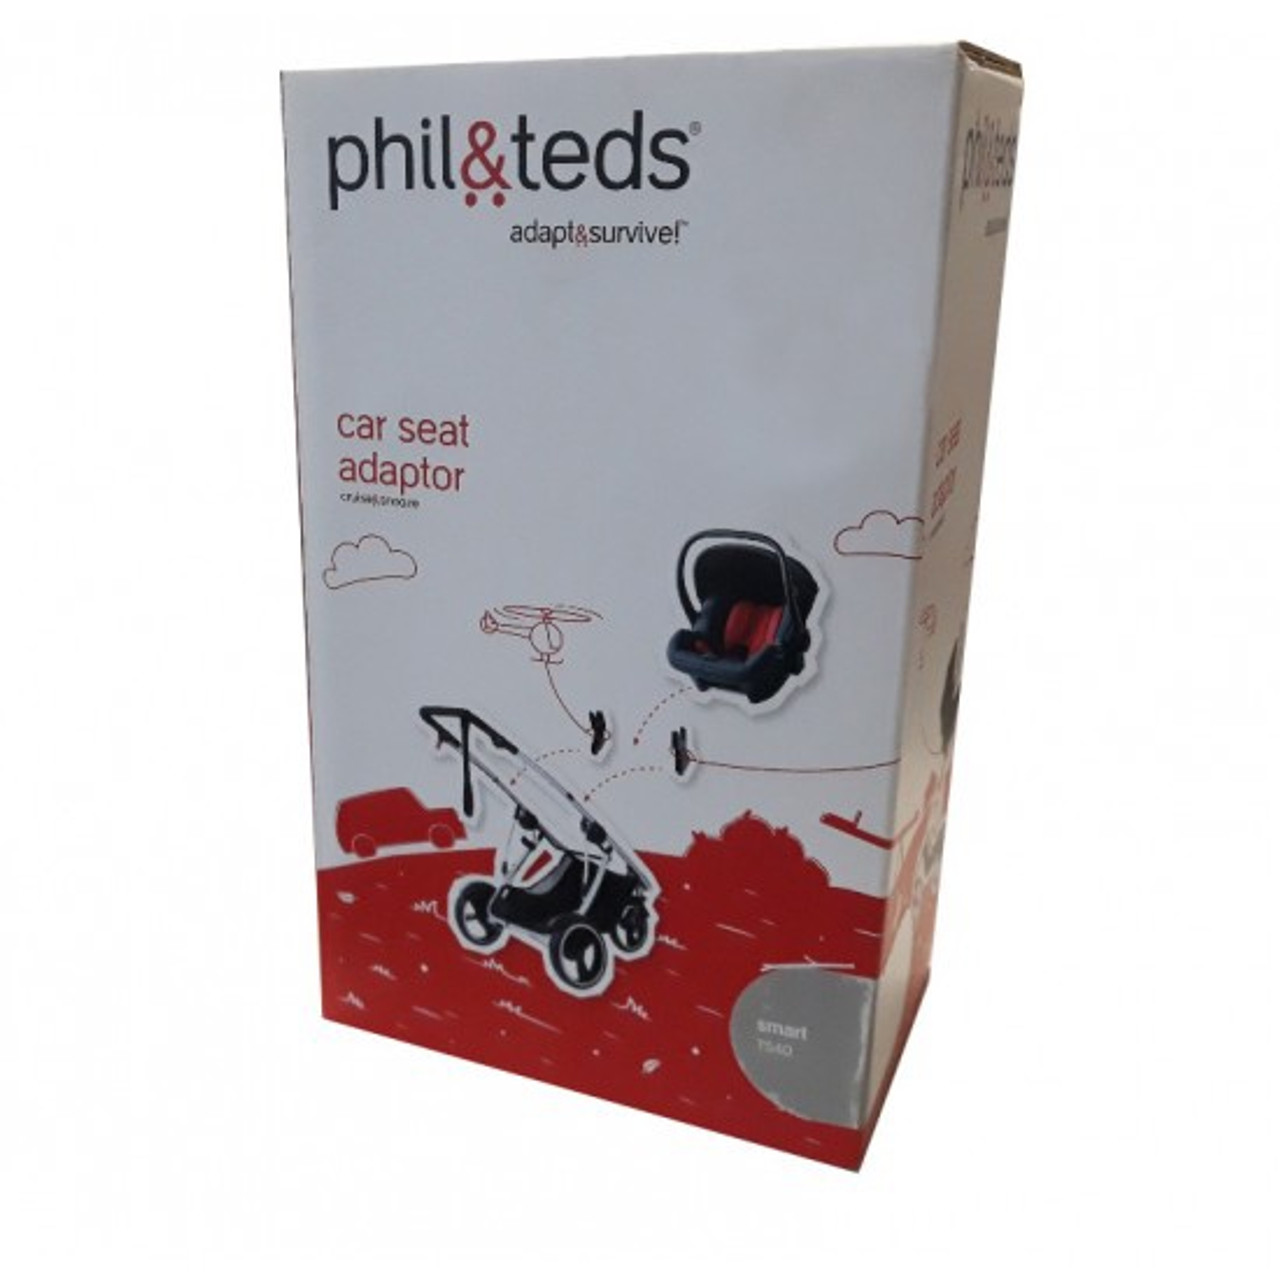 Phil & Teds Smart TS40 Car Seat Adaptor at Baby Barn Discounts Phil & Teds TS40 adaptor would suit the Smart stroller to Maxi Cosi capsule.